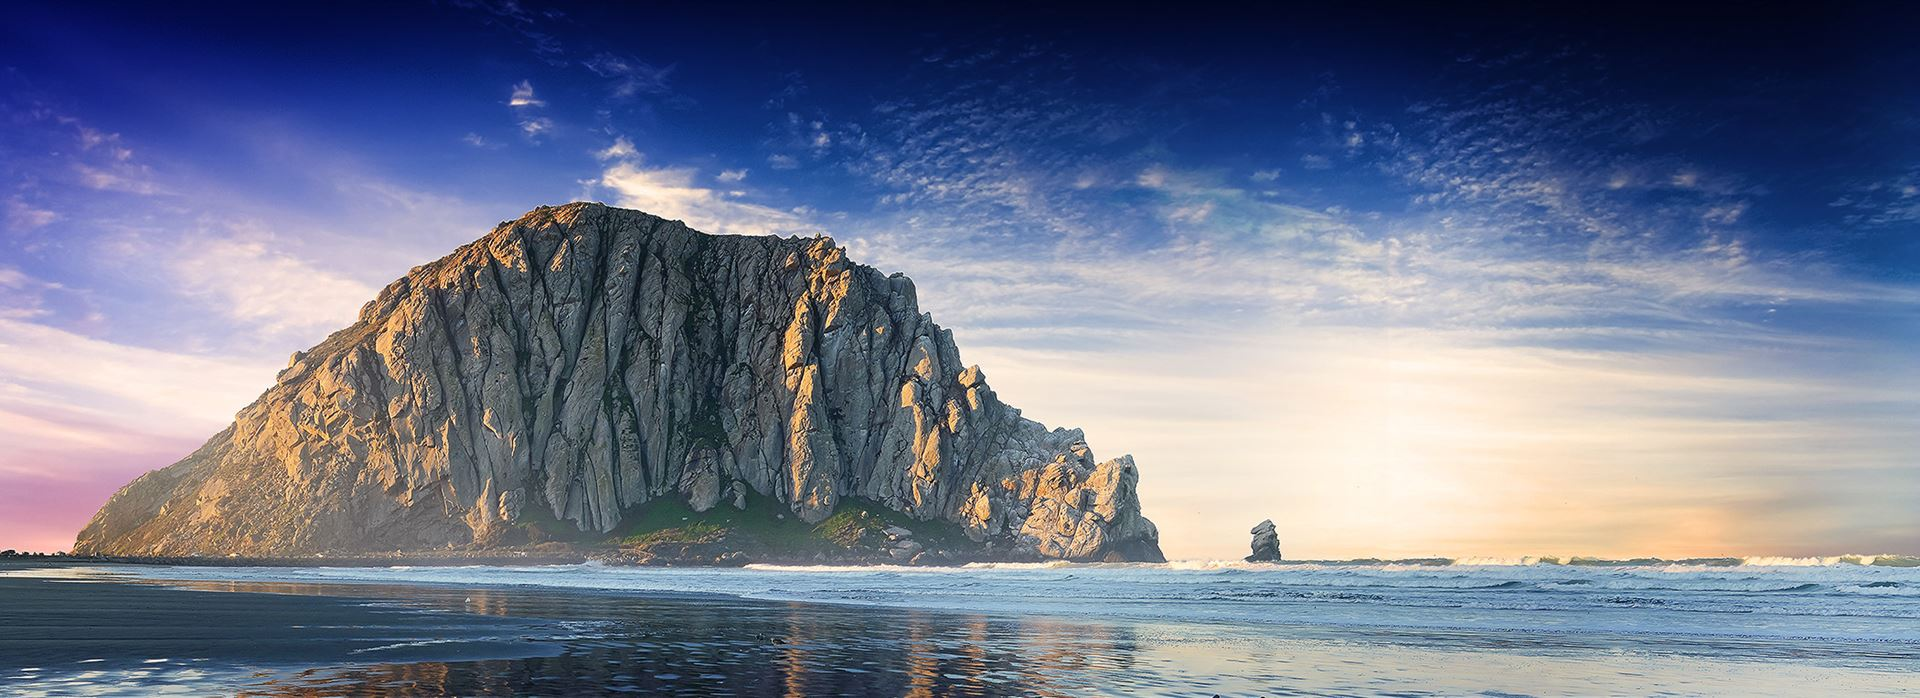 Morro Rock Beach | City of Morro Bay - Official Website